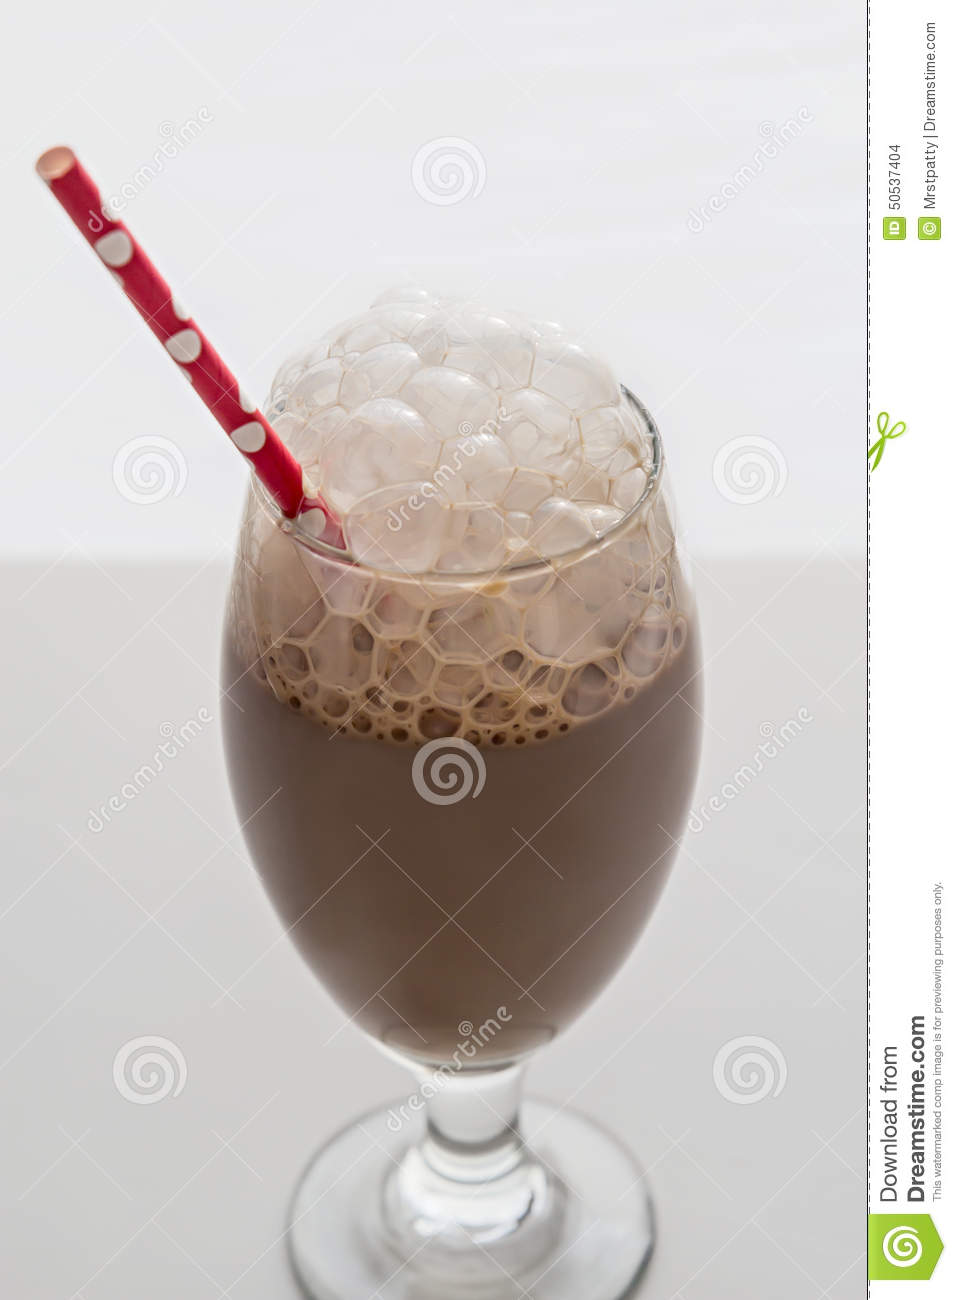 milk and chocolate essay Milk chocolate is high in calories, saturated fat and sugar  in an essay i'm  working on and yes chocolate is very good for your heart health and will help  prevent.